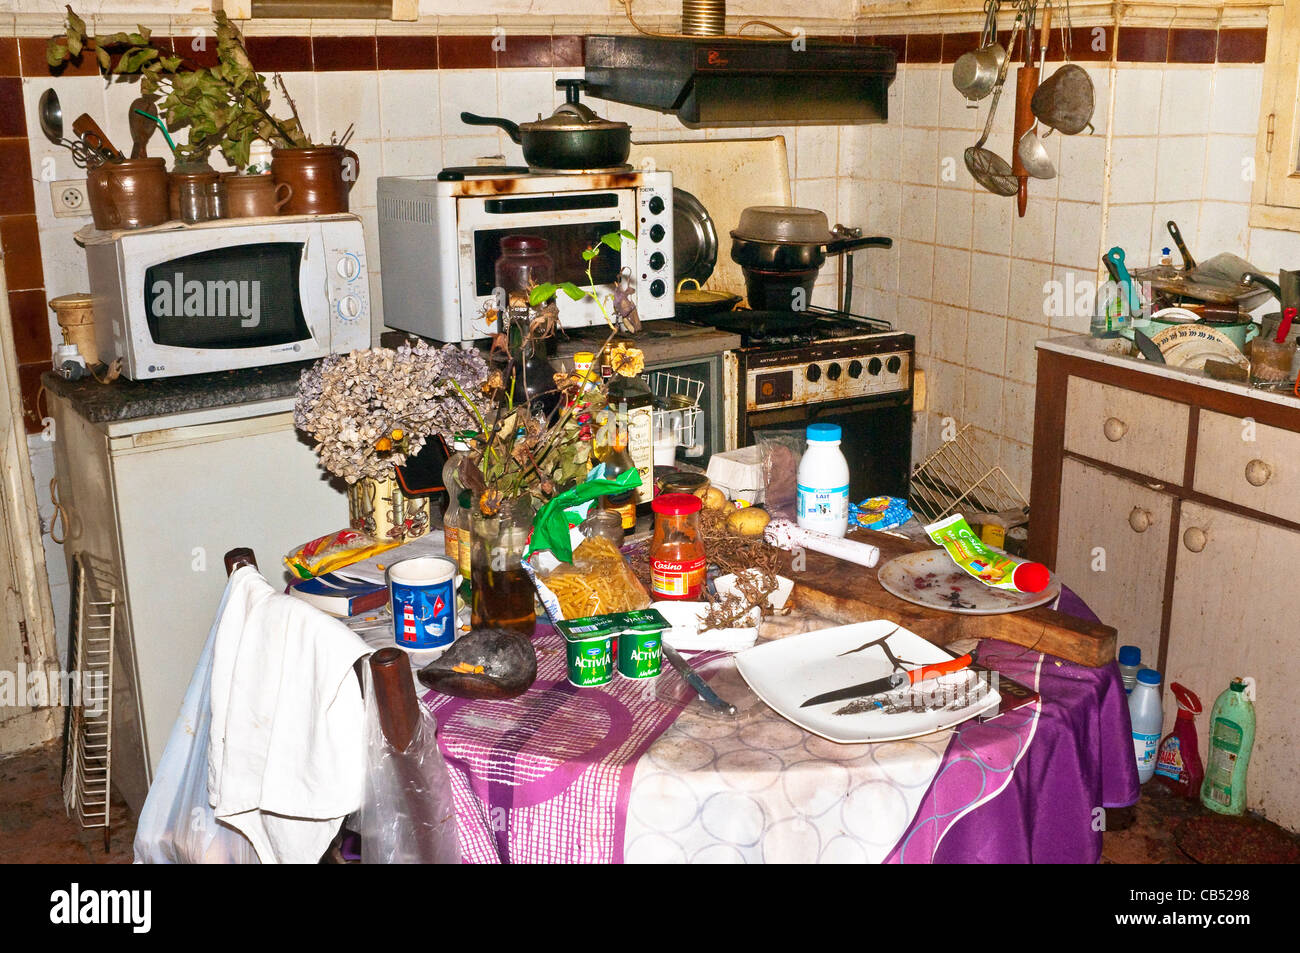 Disgusting domestic slum living conditions - France. - Stock Image